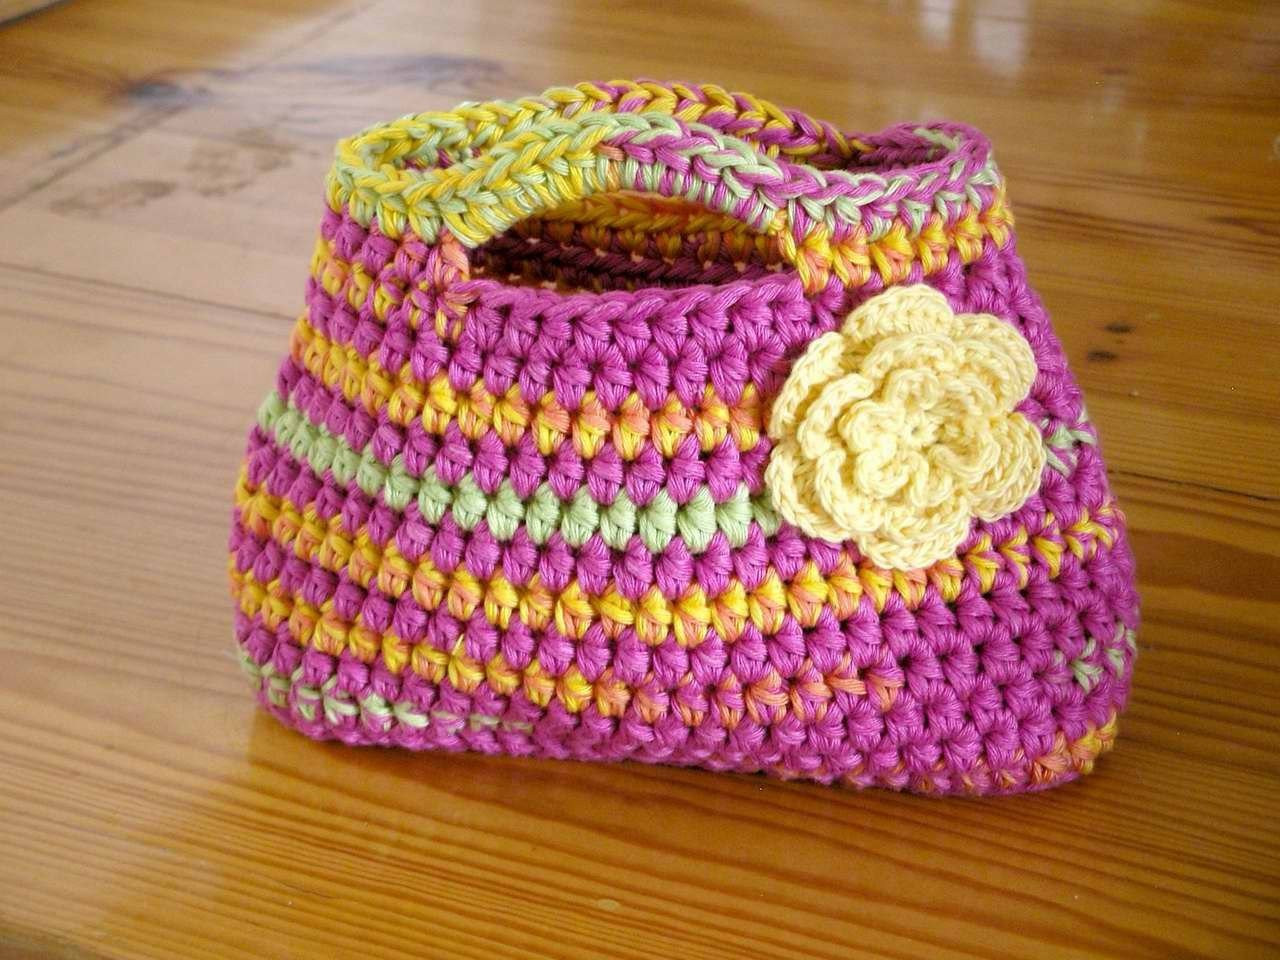 Crochet Patterns for Bags New Easy Peasy Little Kidz Bag Crochet Pattern No 504 Emailed2u Of Incredible 40 Pics Crochet Patterns for Bags